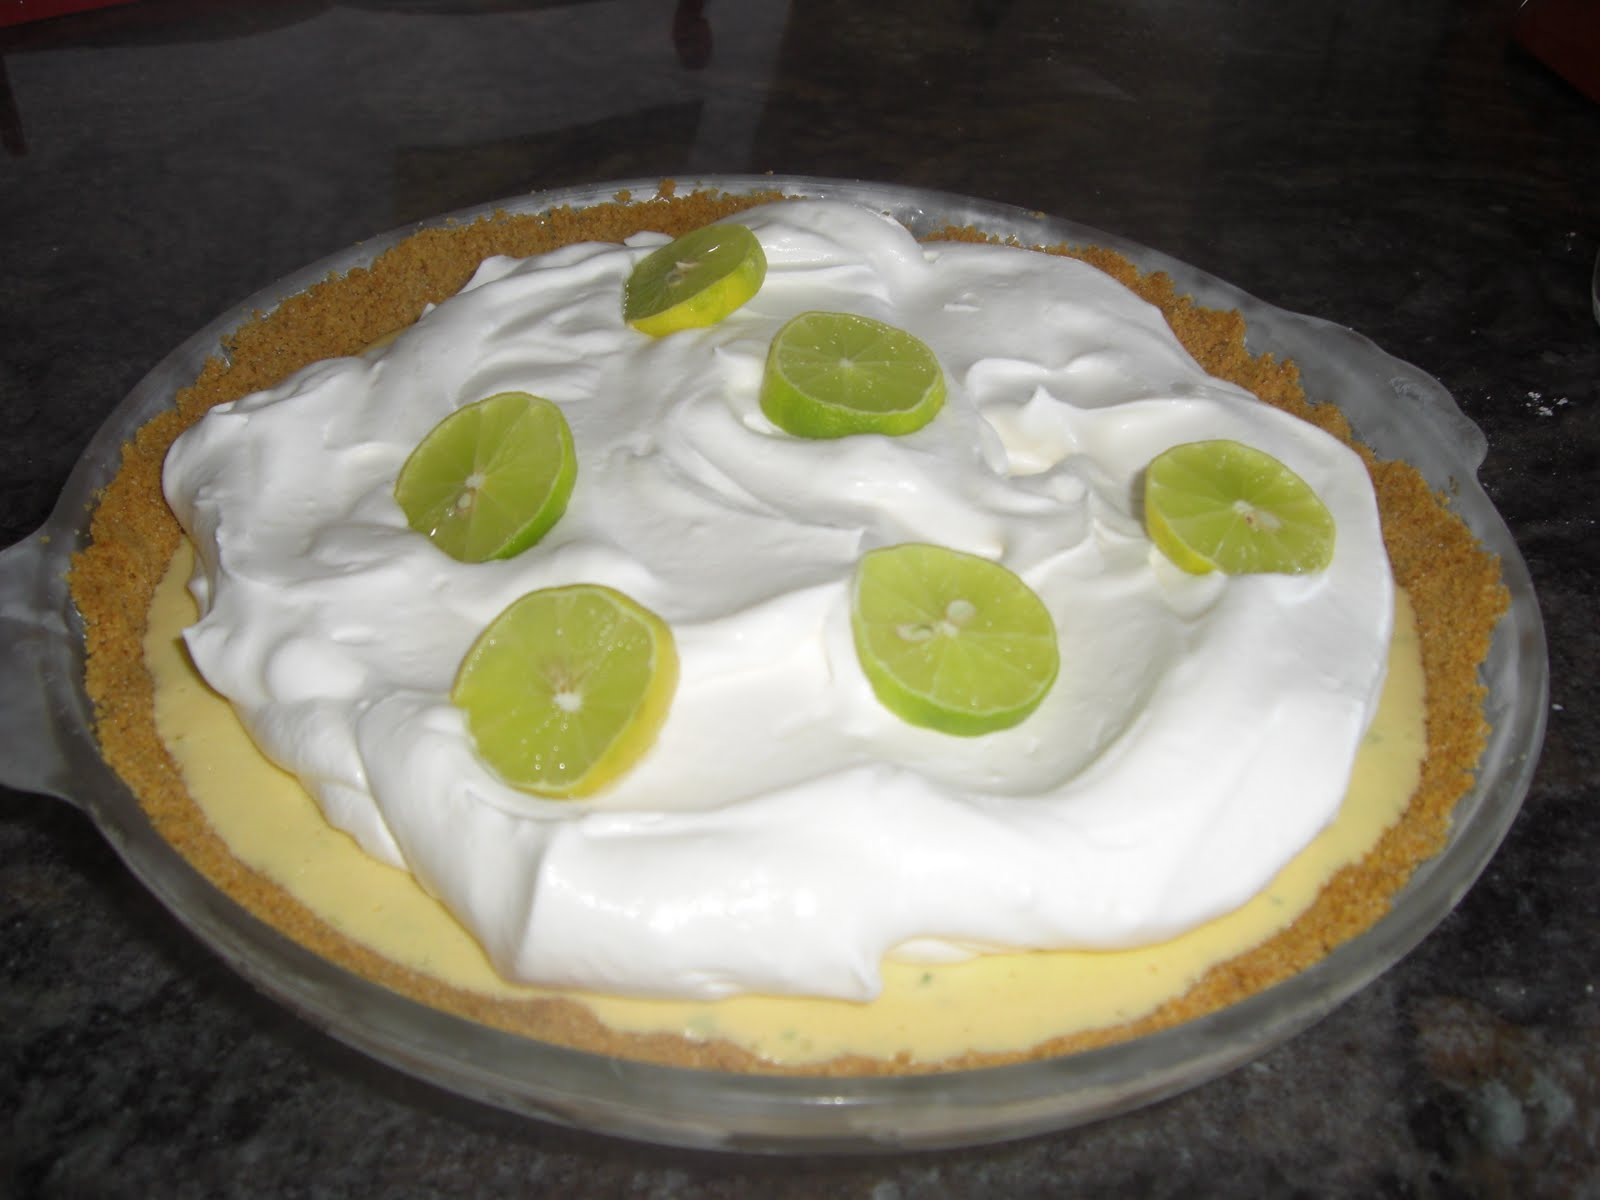 My life in food: Frozen Key Lime Pie